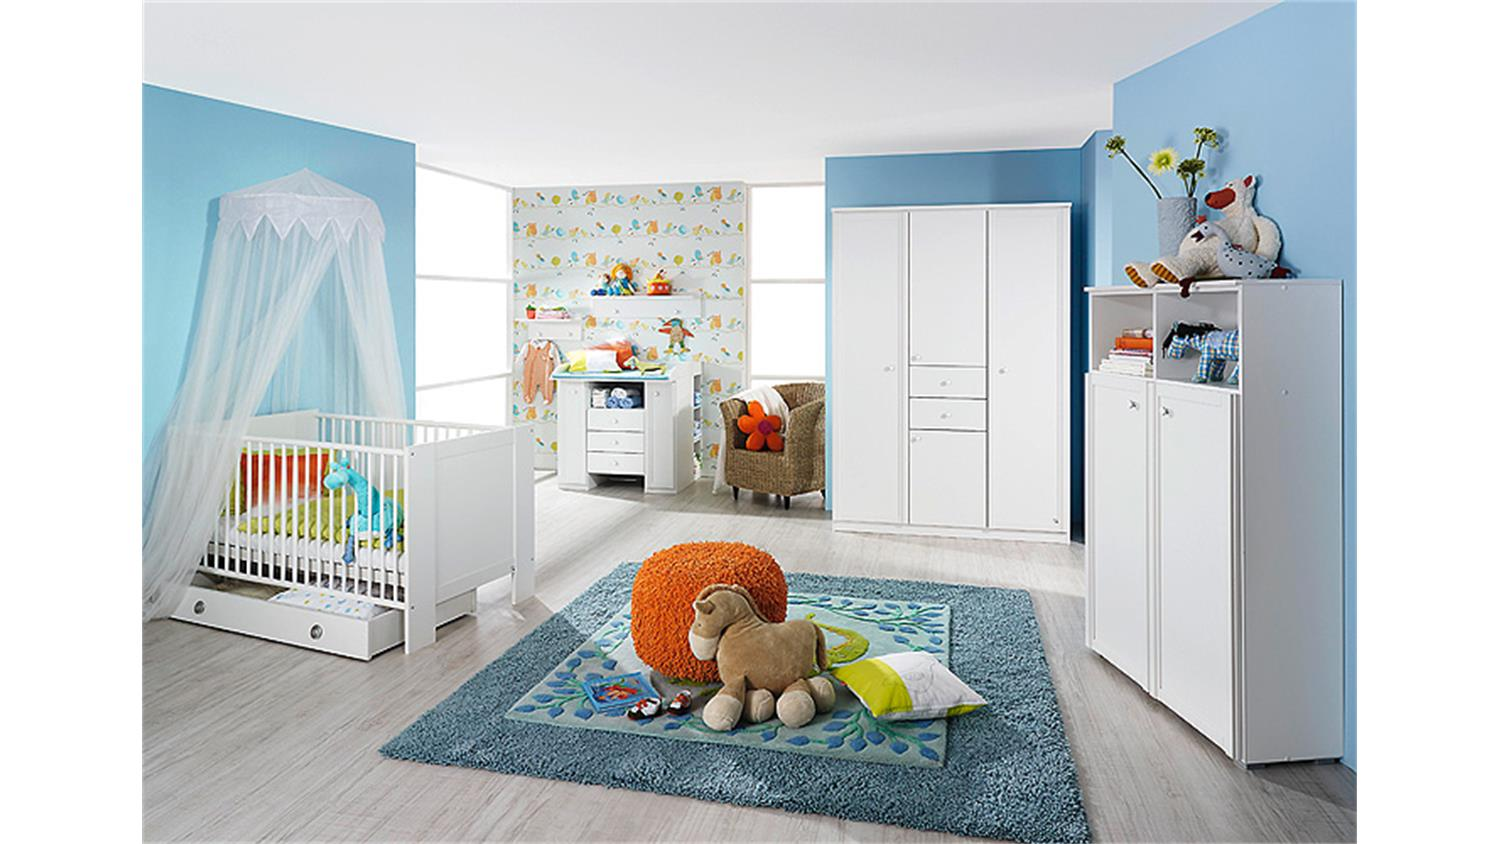 babyzimmer set leni komplett kinderzimmer in wei 5 teilig. Black Bedroom Furniture Sets. Home Design Ideas